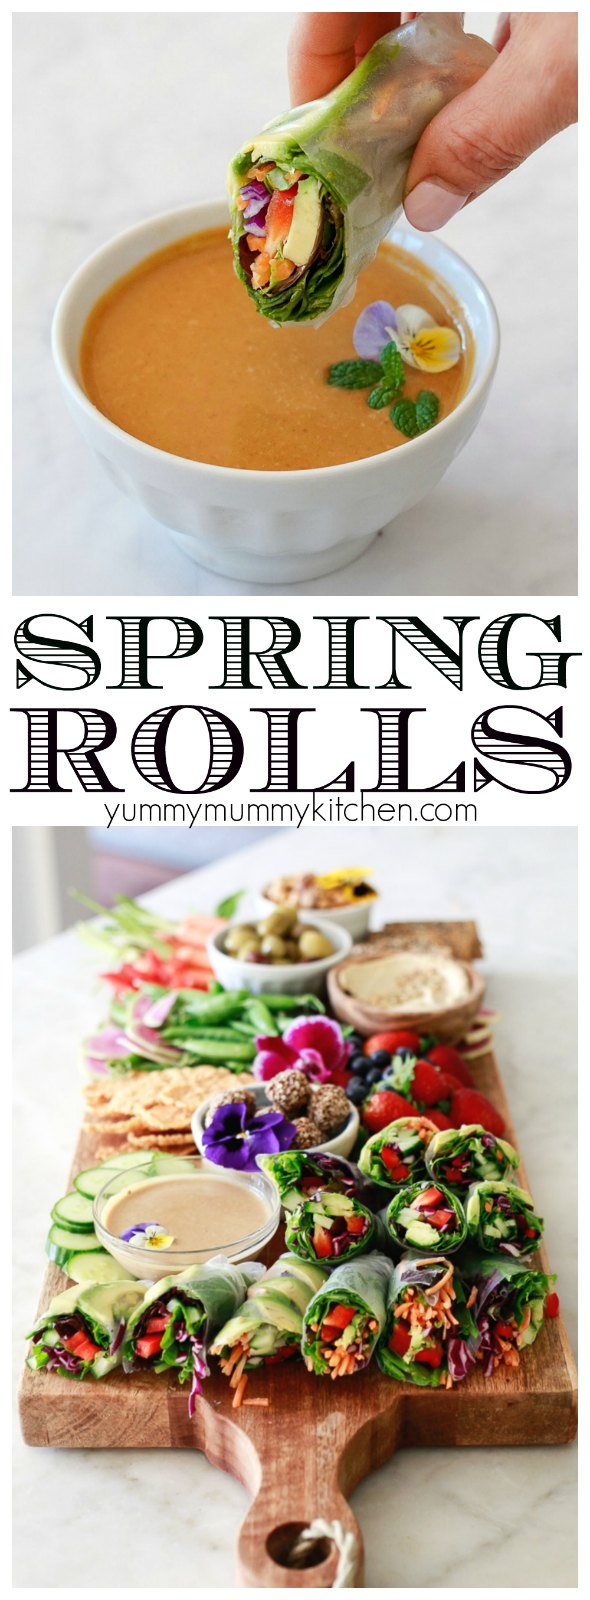 Find out how to make fresh spring rolls with this easy recipe. These vegan spring rolls with peanut sauce are so delicious!